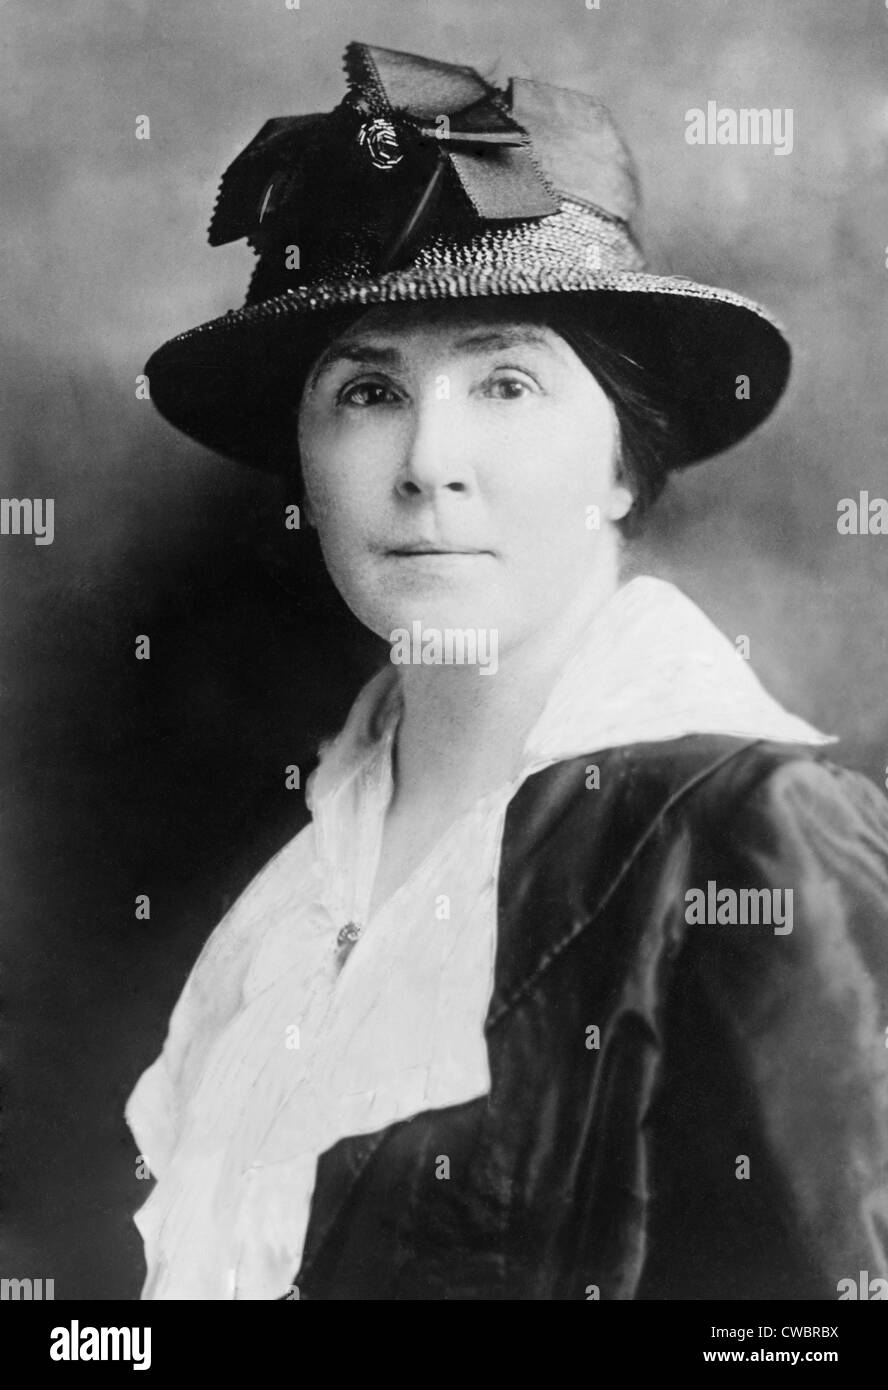 Matilda Gardner, one of the original core of activists who worked with Alice Paul and Lucy Burns when they first - Stock Image